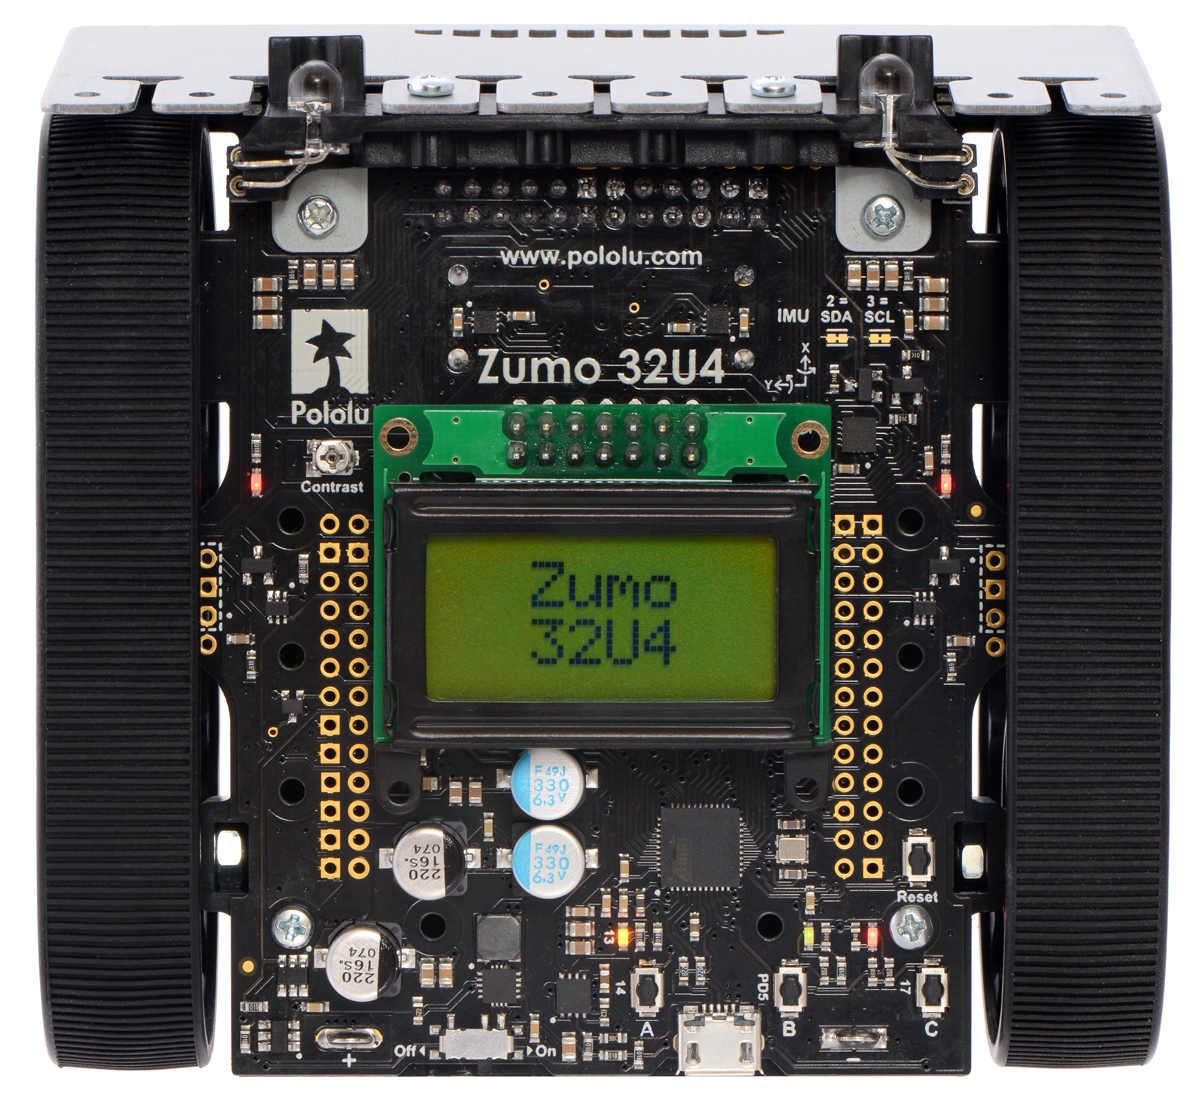 Pololu Zumo 32u4 Robot Users Guide There Are Fancier Designs Available But The Above Circuits Leds